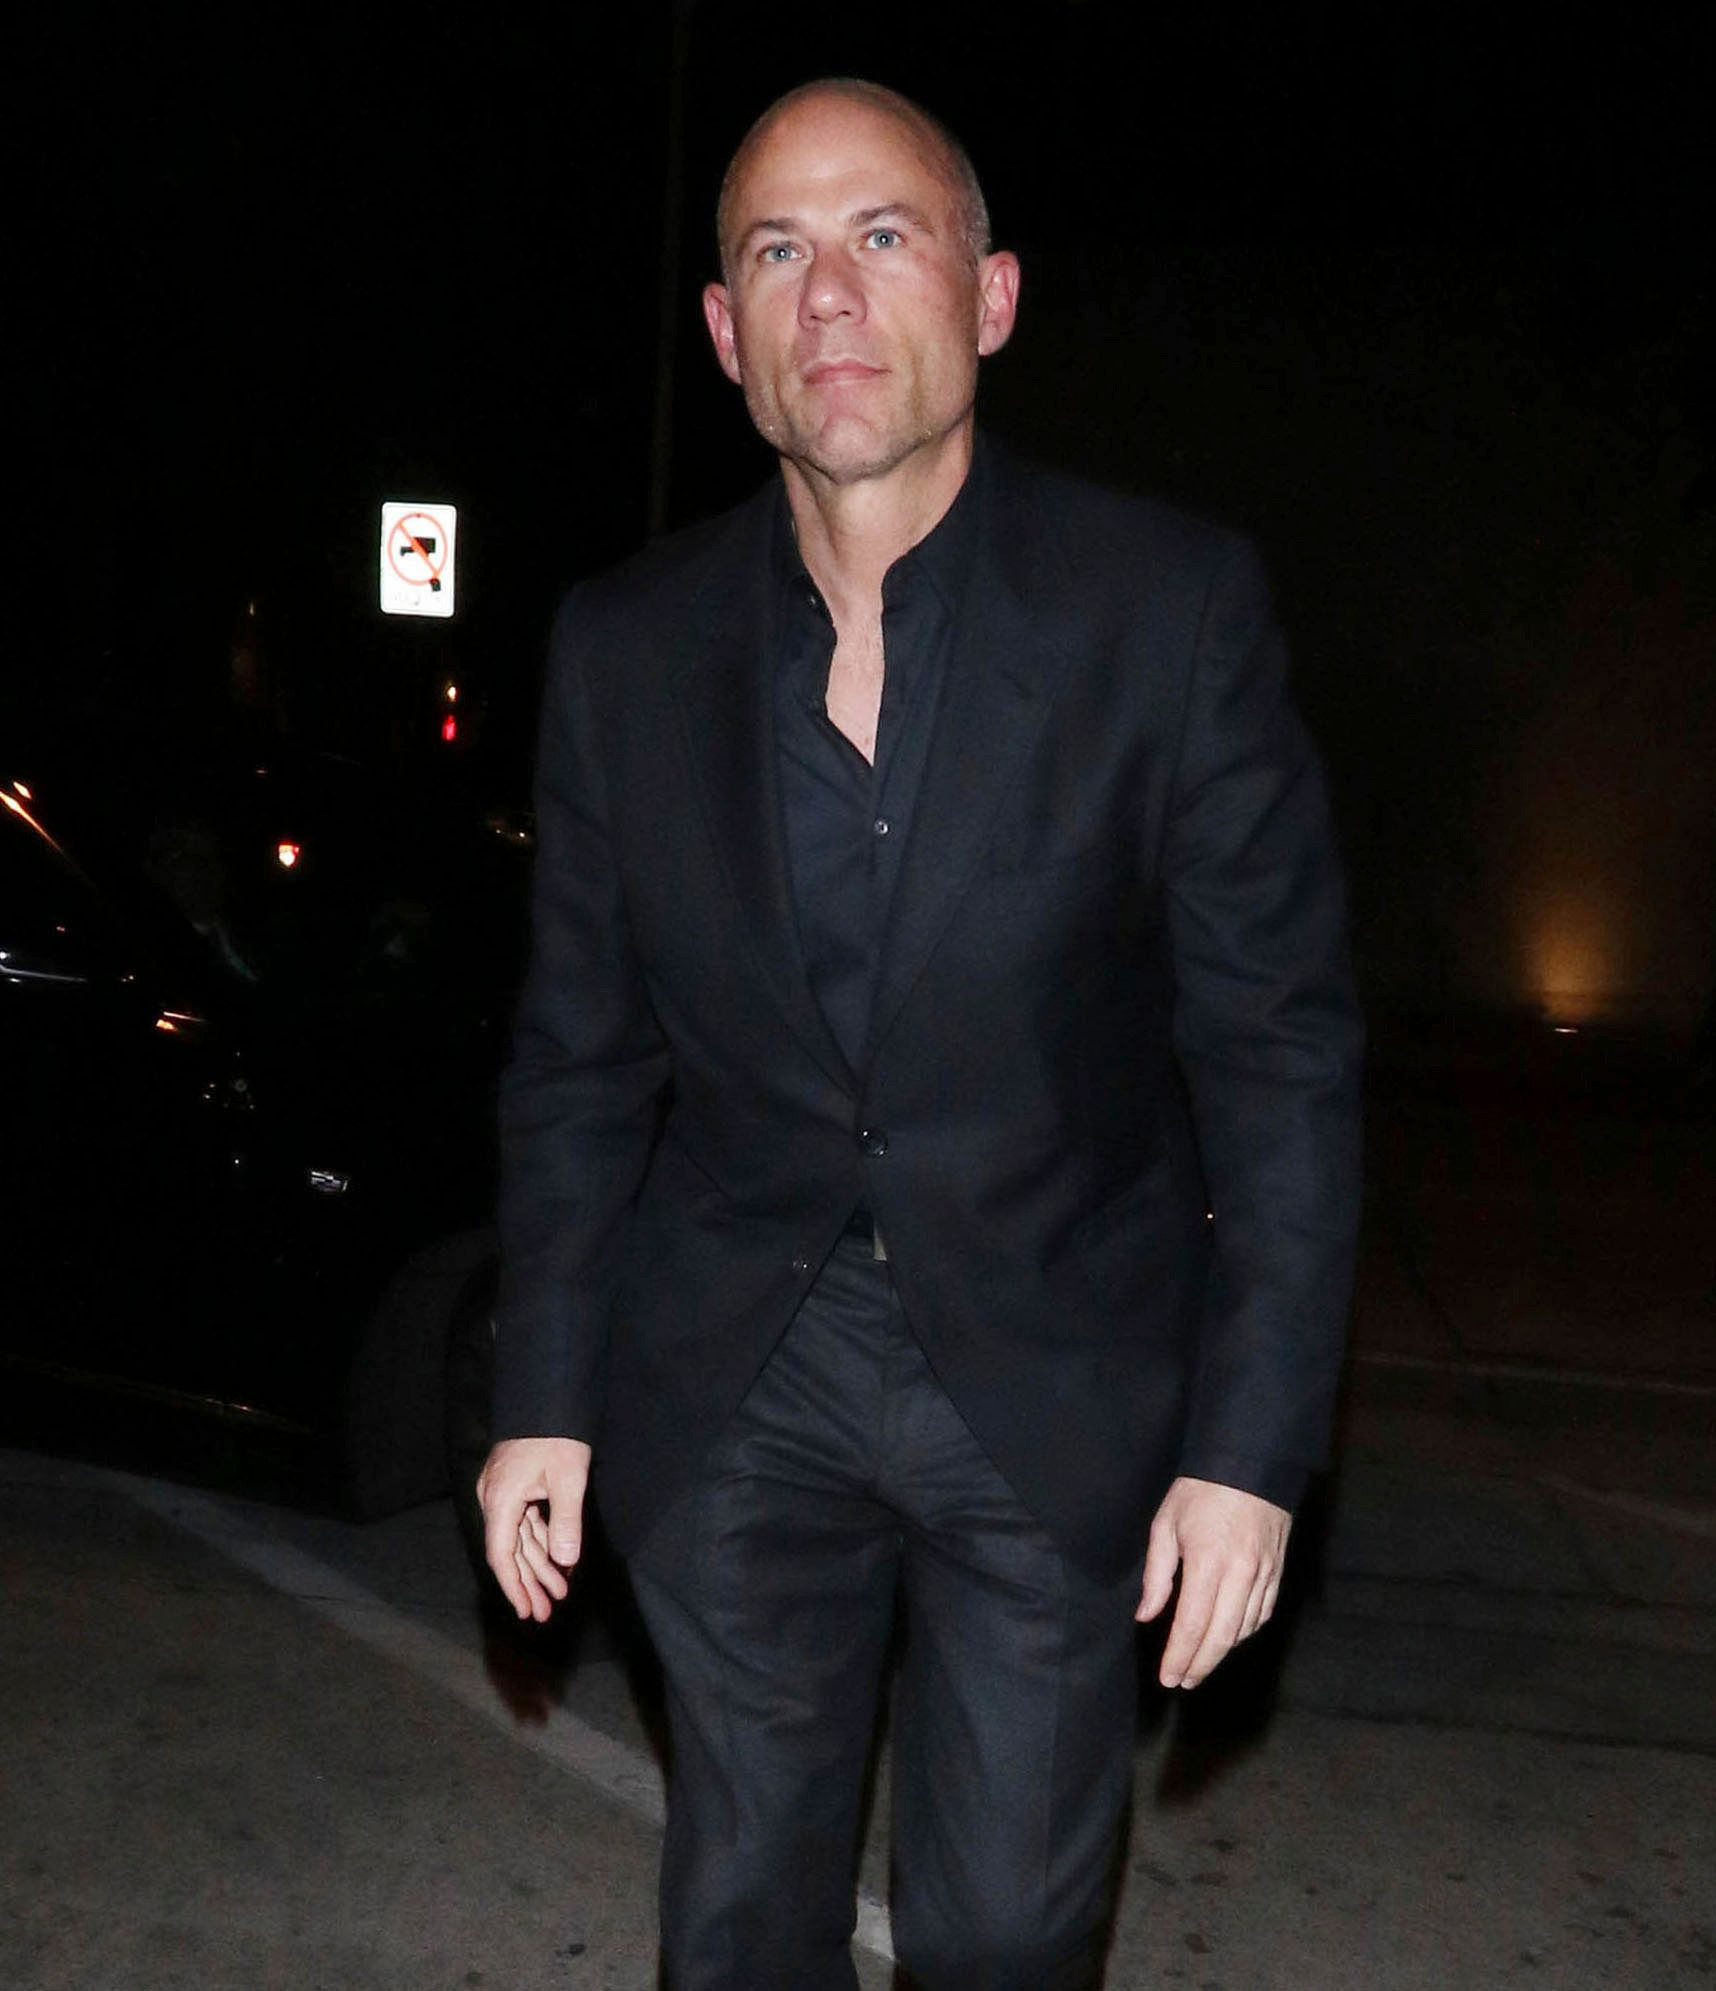 MARCH 26, 2019: Federal prosecutors in Manhattan, NYC and Los Angeles, CA charged celebrity attorney Michael Avenatti nearly simultaneously in two criminal cases on Monday, March 25, 2019. These complaints allege that Avenatti attempted to extort more than $20 million from Nike, Inc. and that he committed wire fraud and bank fraud. - File Photo by: zz/GOTPAP/STAR MAX/IPx 2019 3/16/19 Michael Avenatti is seen outside Craig's Restaurant in West Hollywood, Los Angeles, CA.